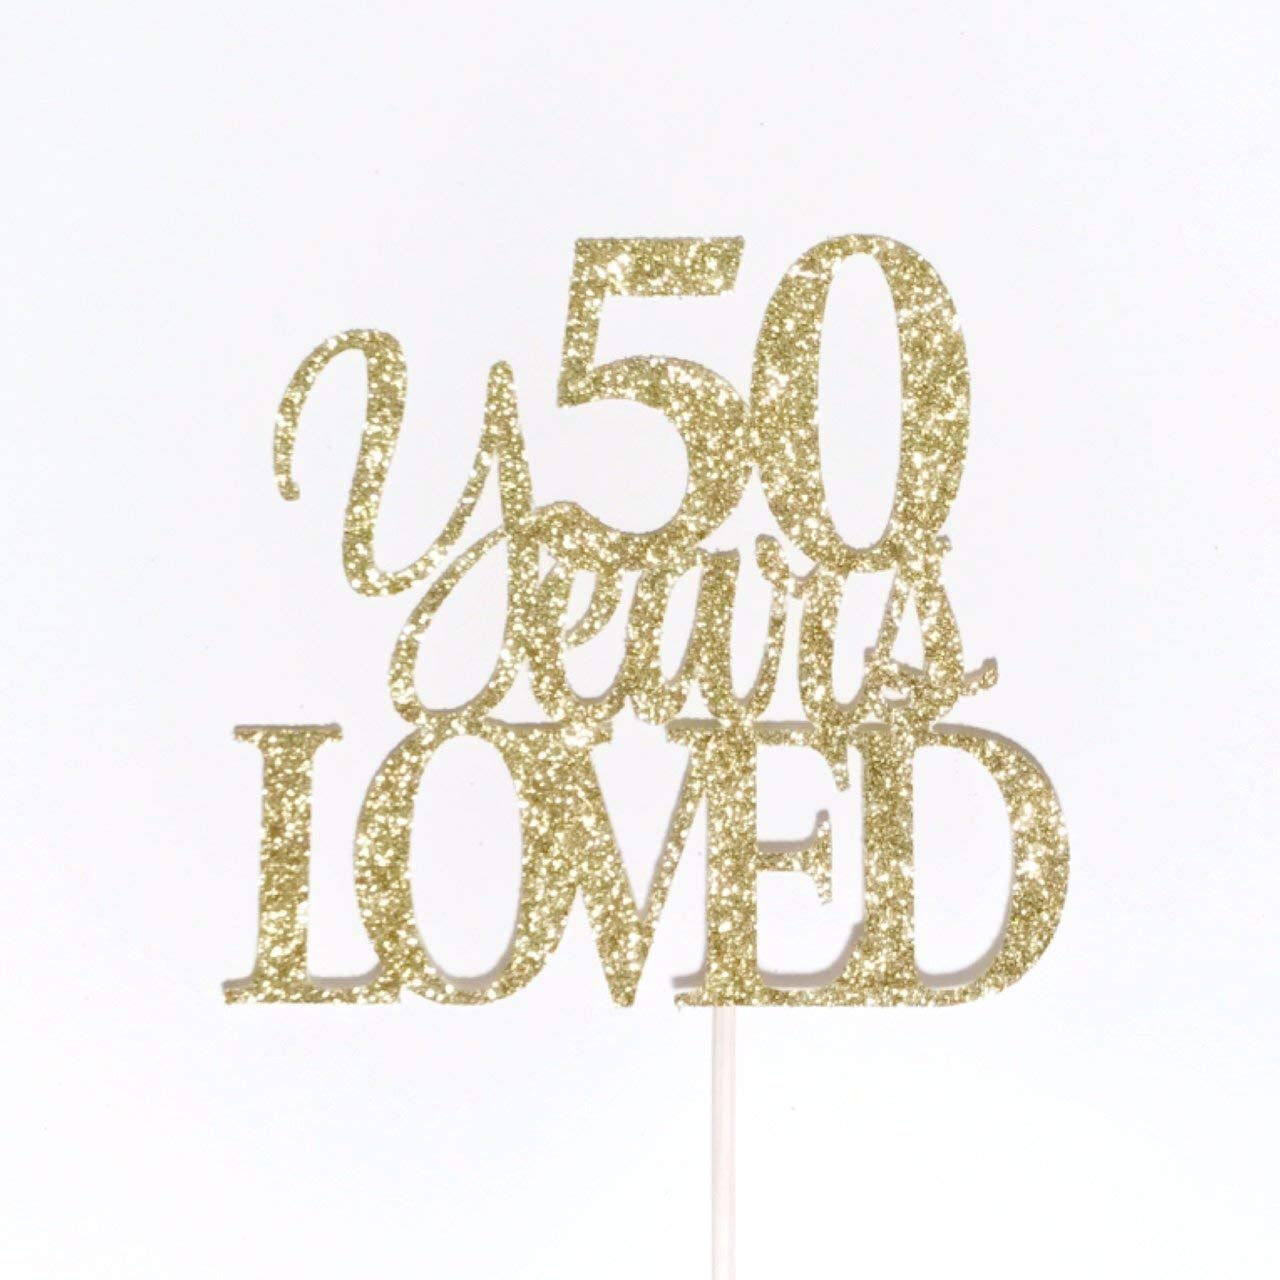 50th Birthday Cake Topper 50 Anniversary Topper Atelier Elegance Limited 1970 Edition Cake Topper